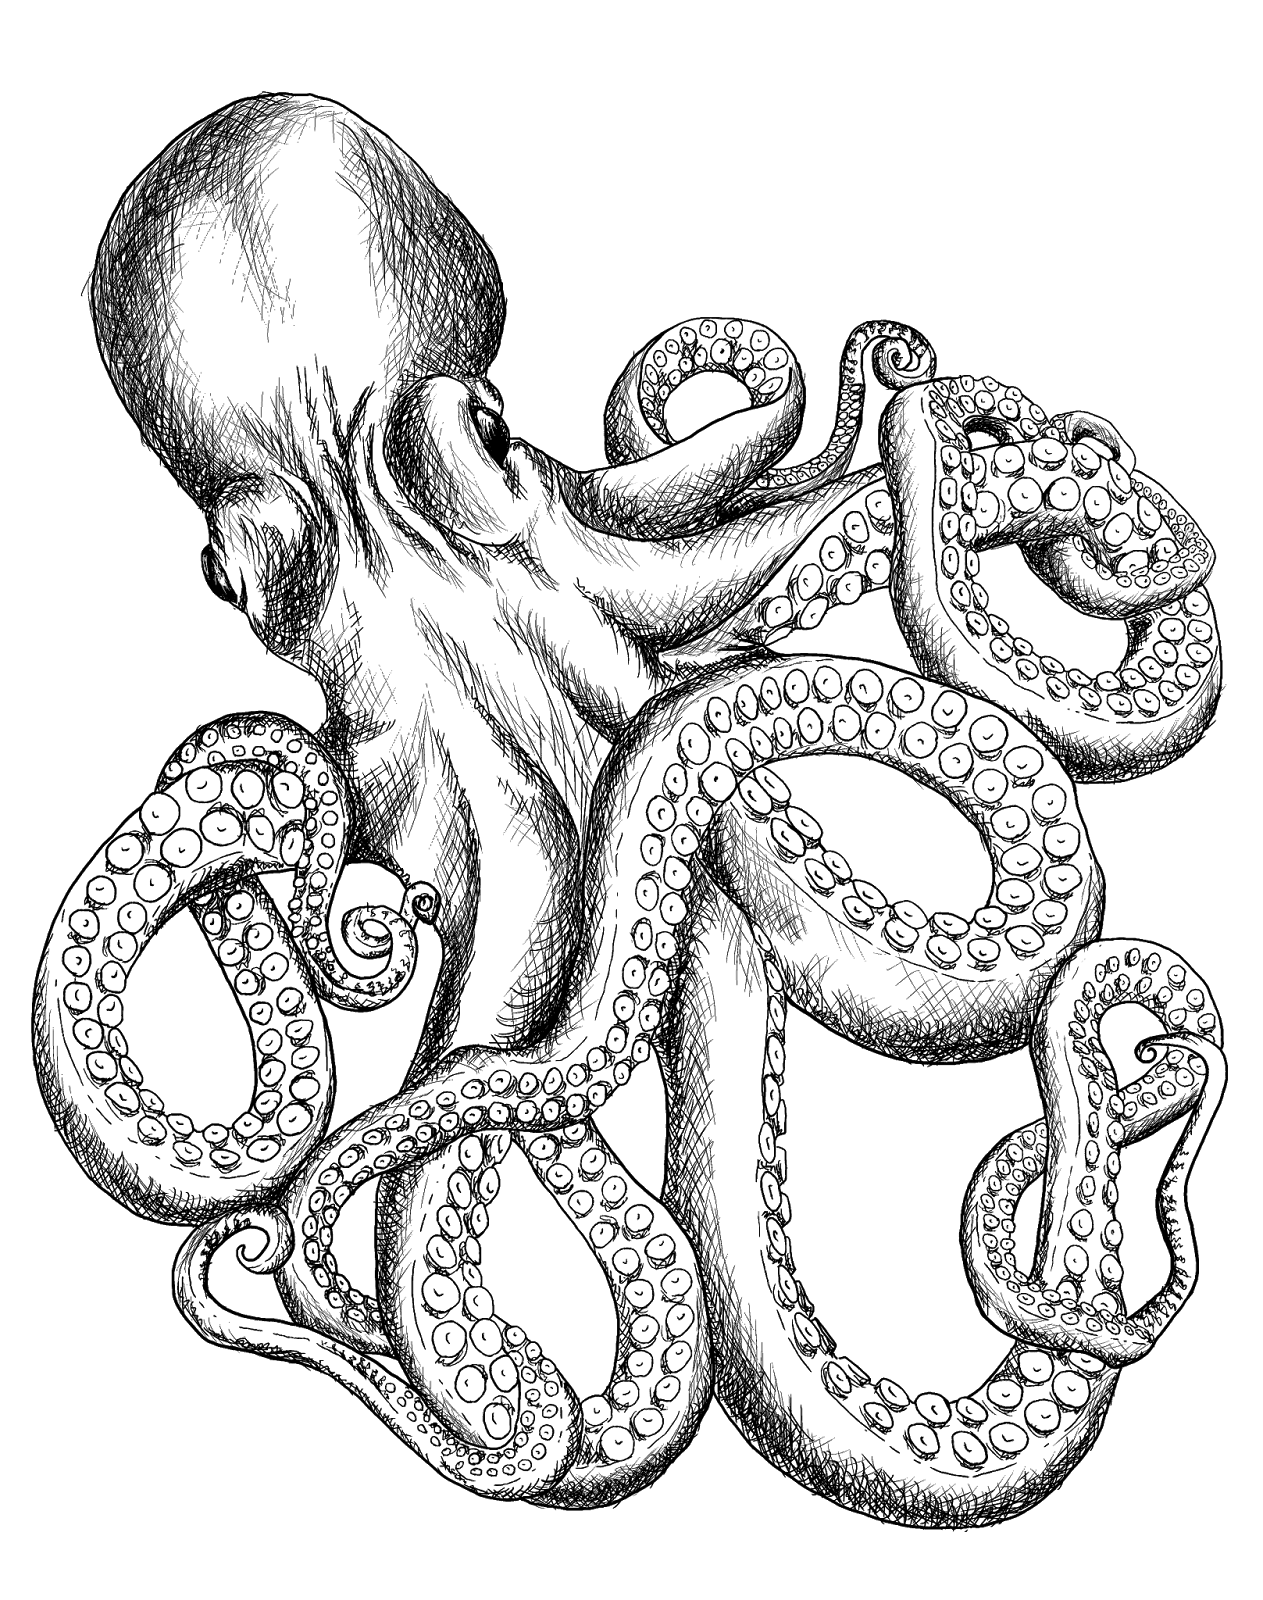 T shirt line art. Scholarships drawing octopus vector black and white